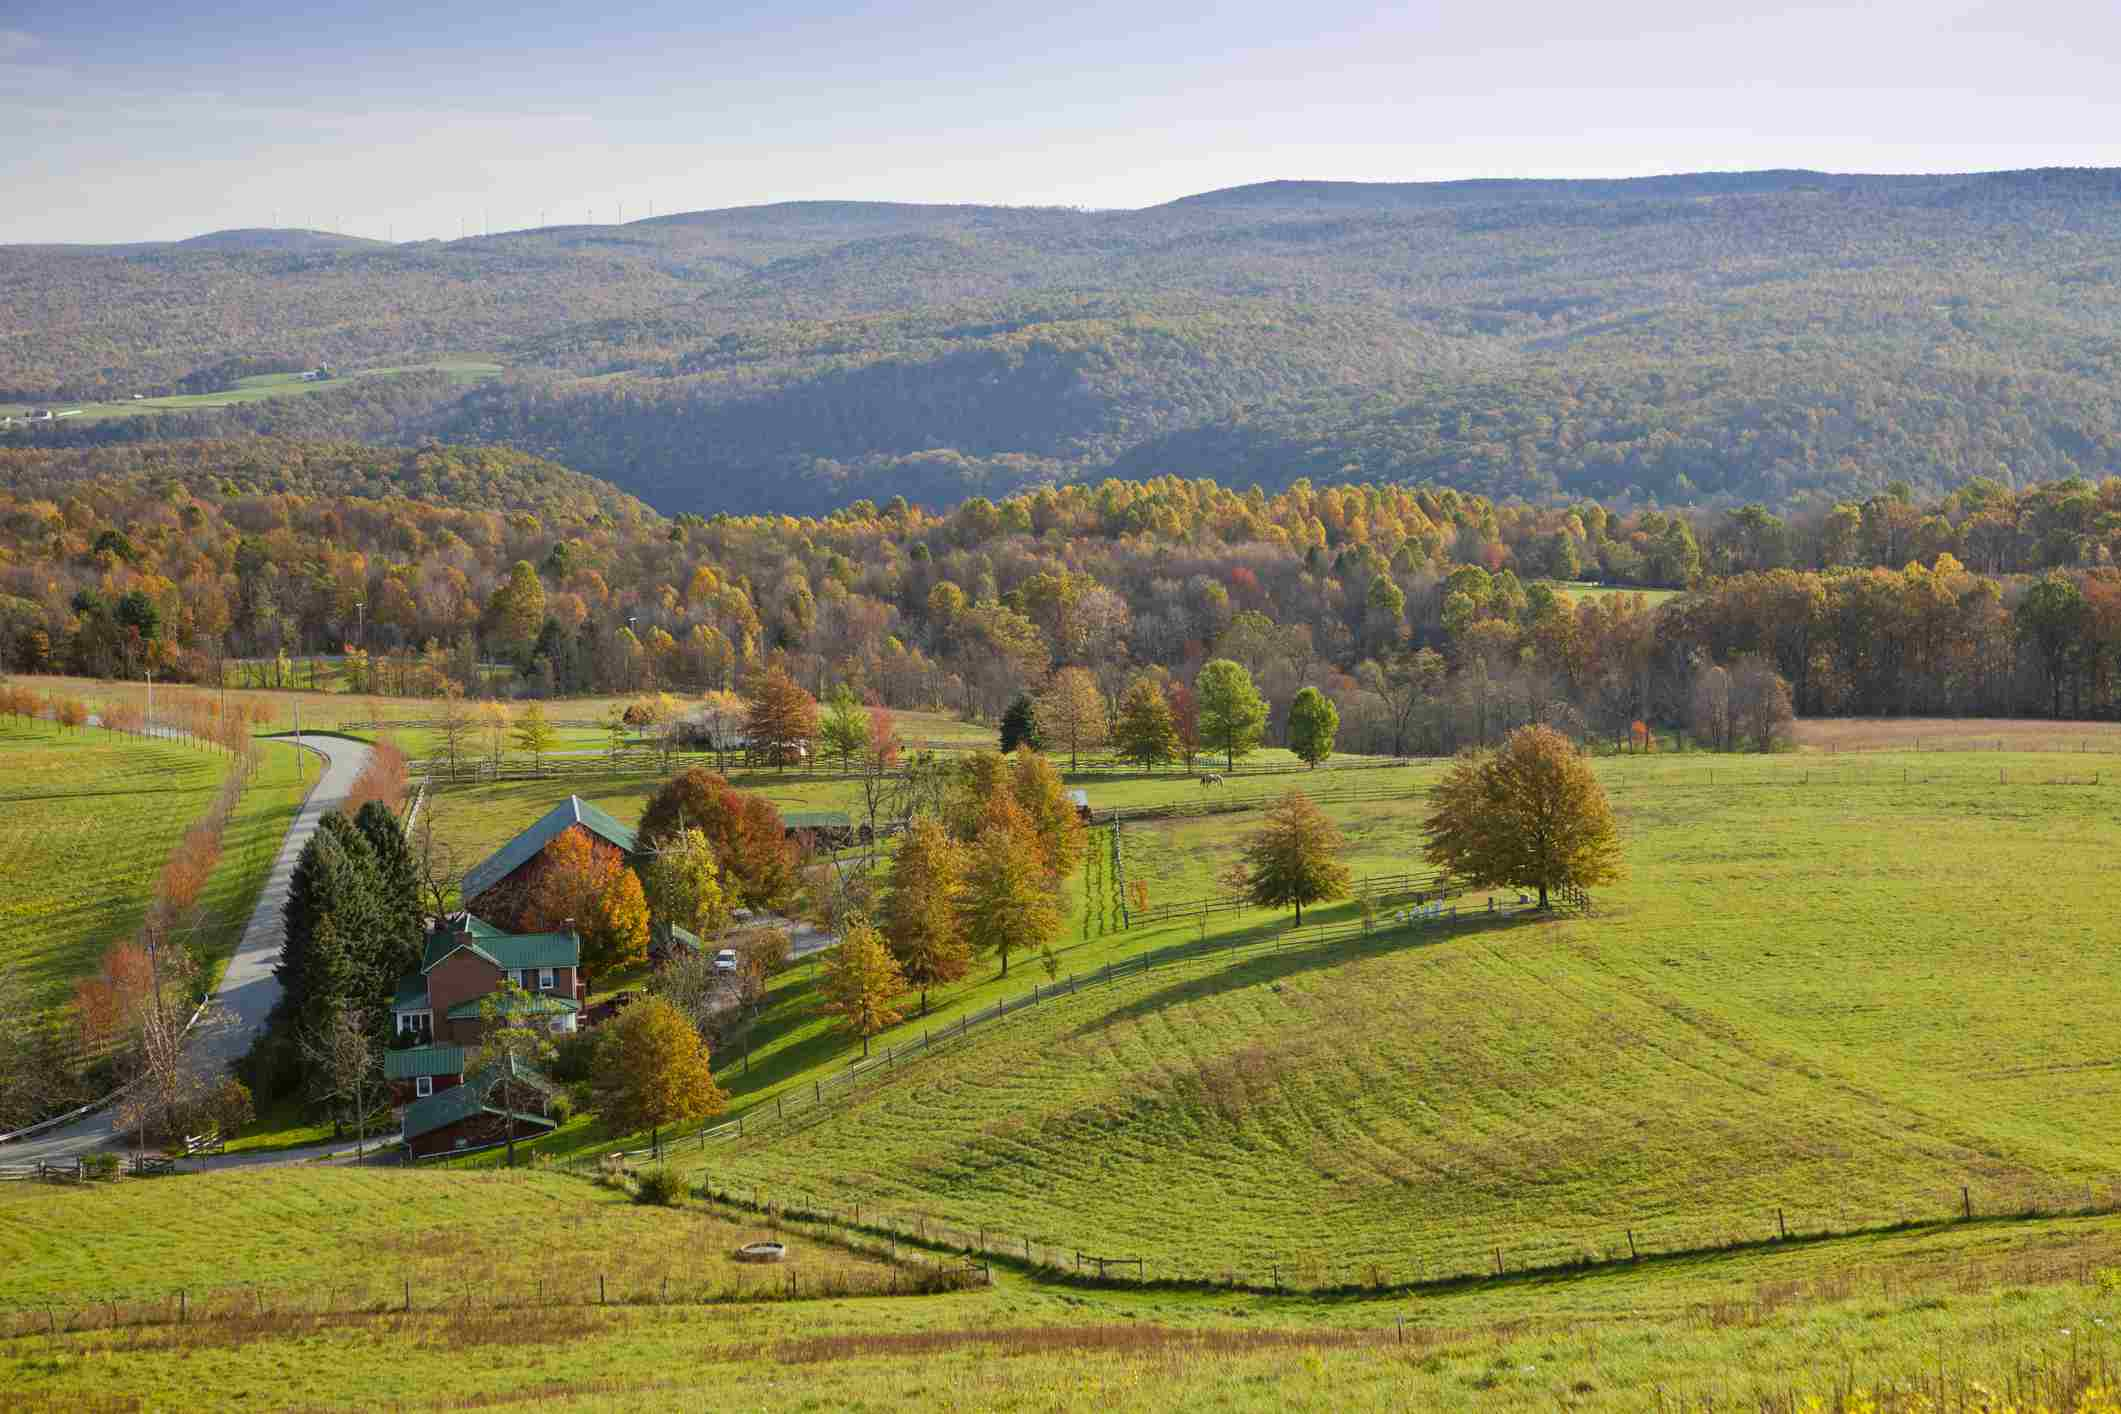 Scenic view of Allegheny Mountains in the Laurel Highlands from Kentuk Knob